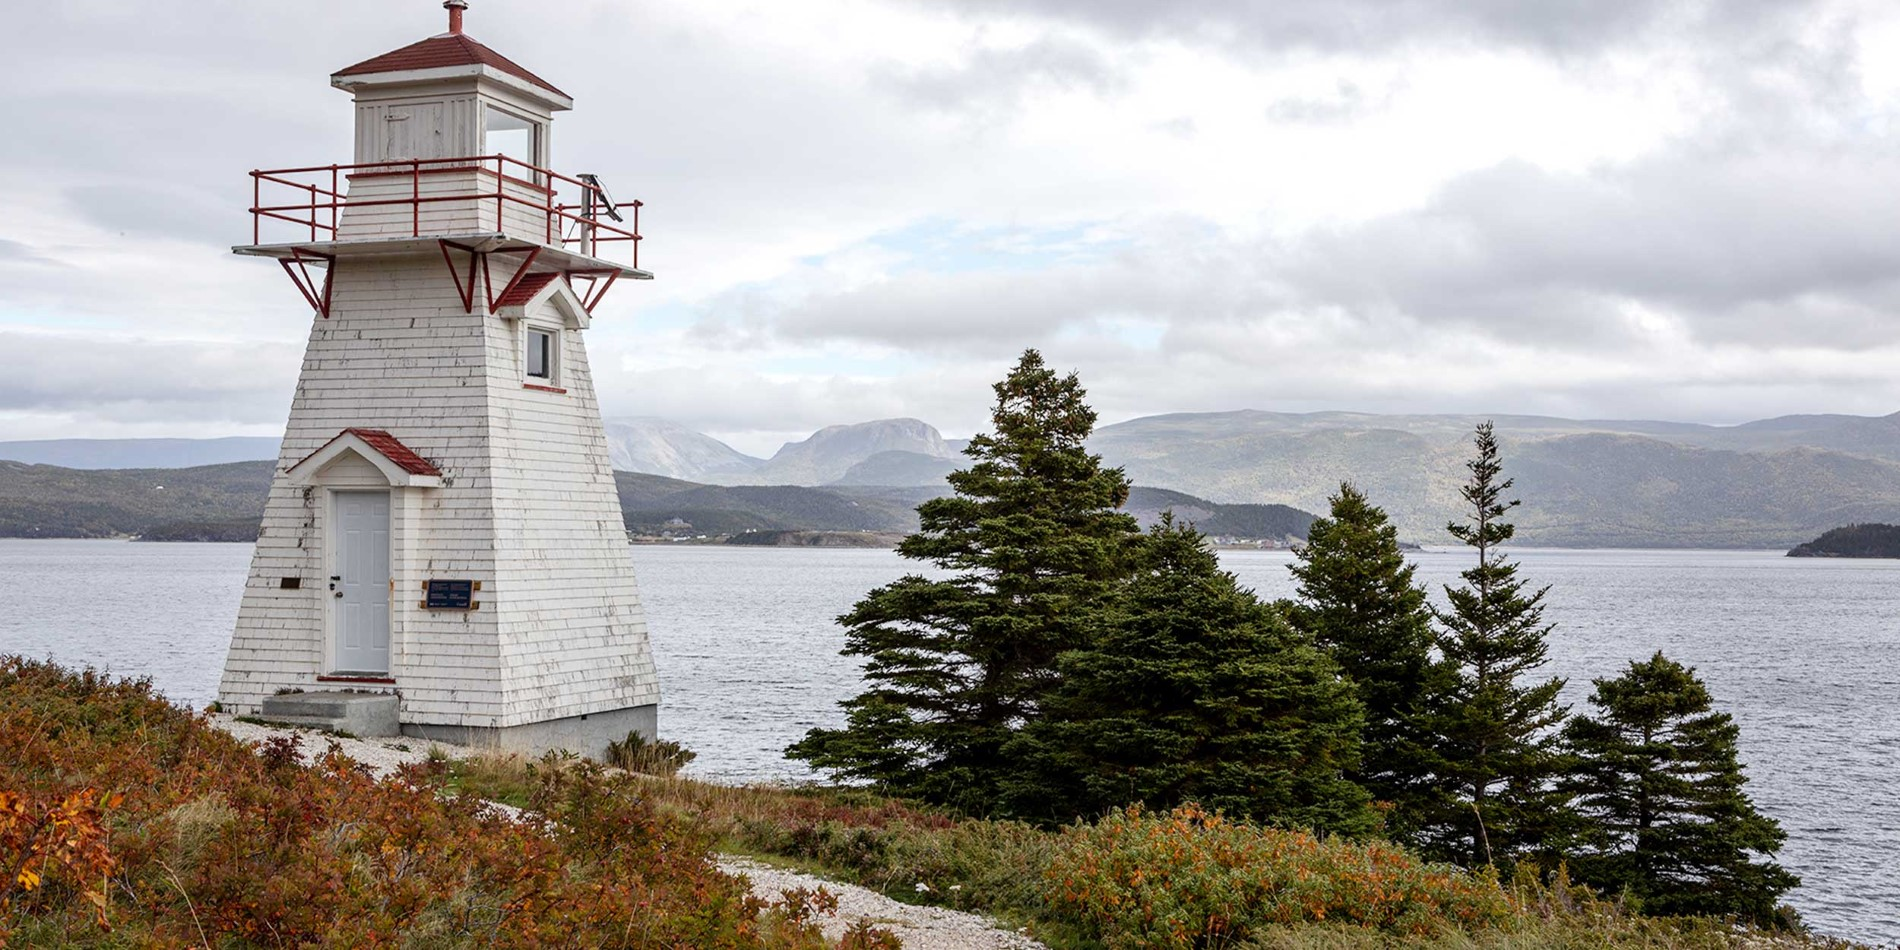 Gros-Morne-Woody-Point-Lighthouse-Canada-HGR-127290-Camille-Seaman.jpg